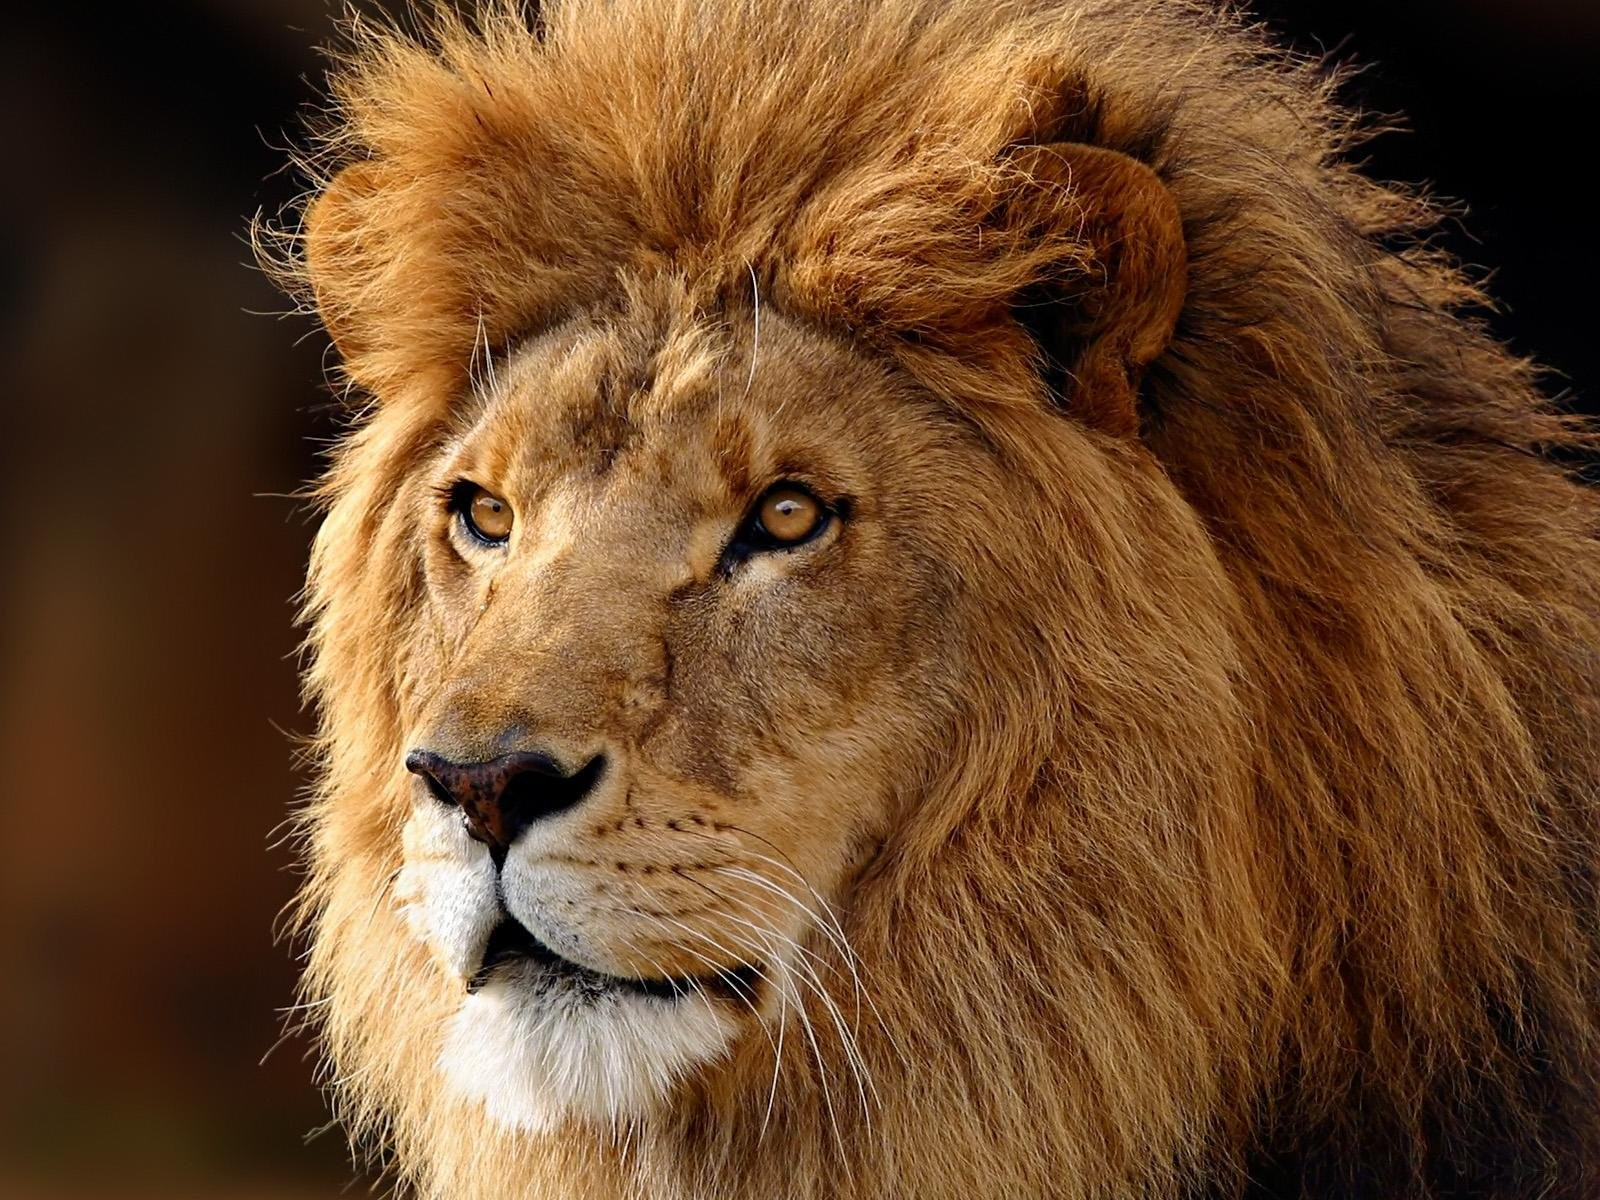 Wallpaper lion Huge fluffy lion 1600x1200